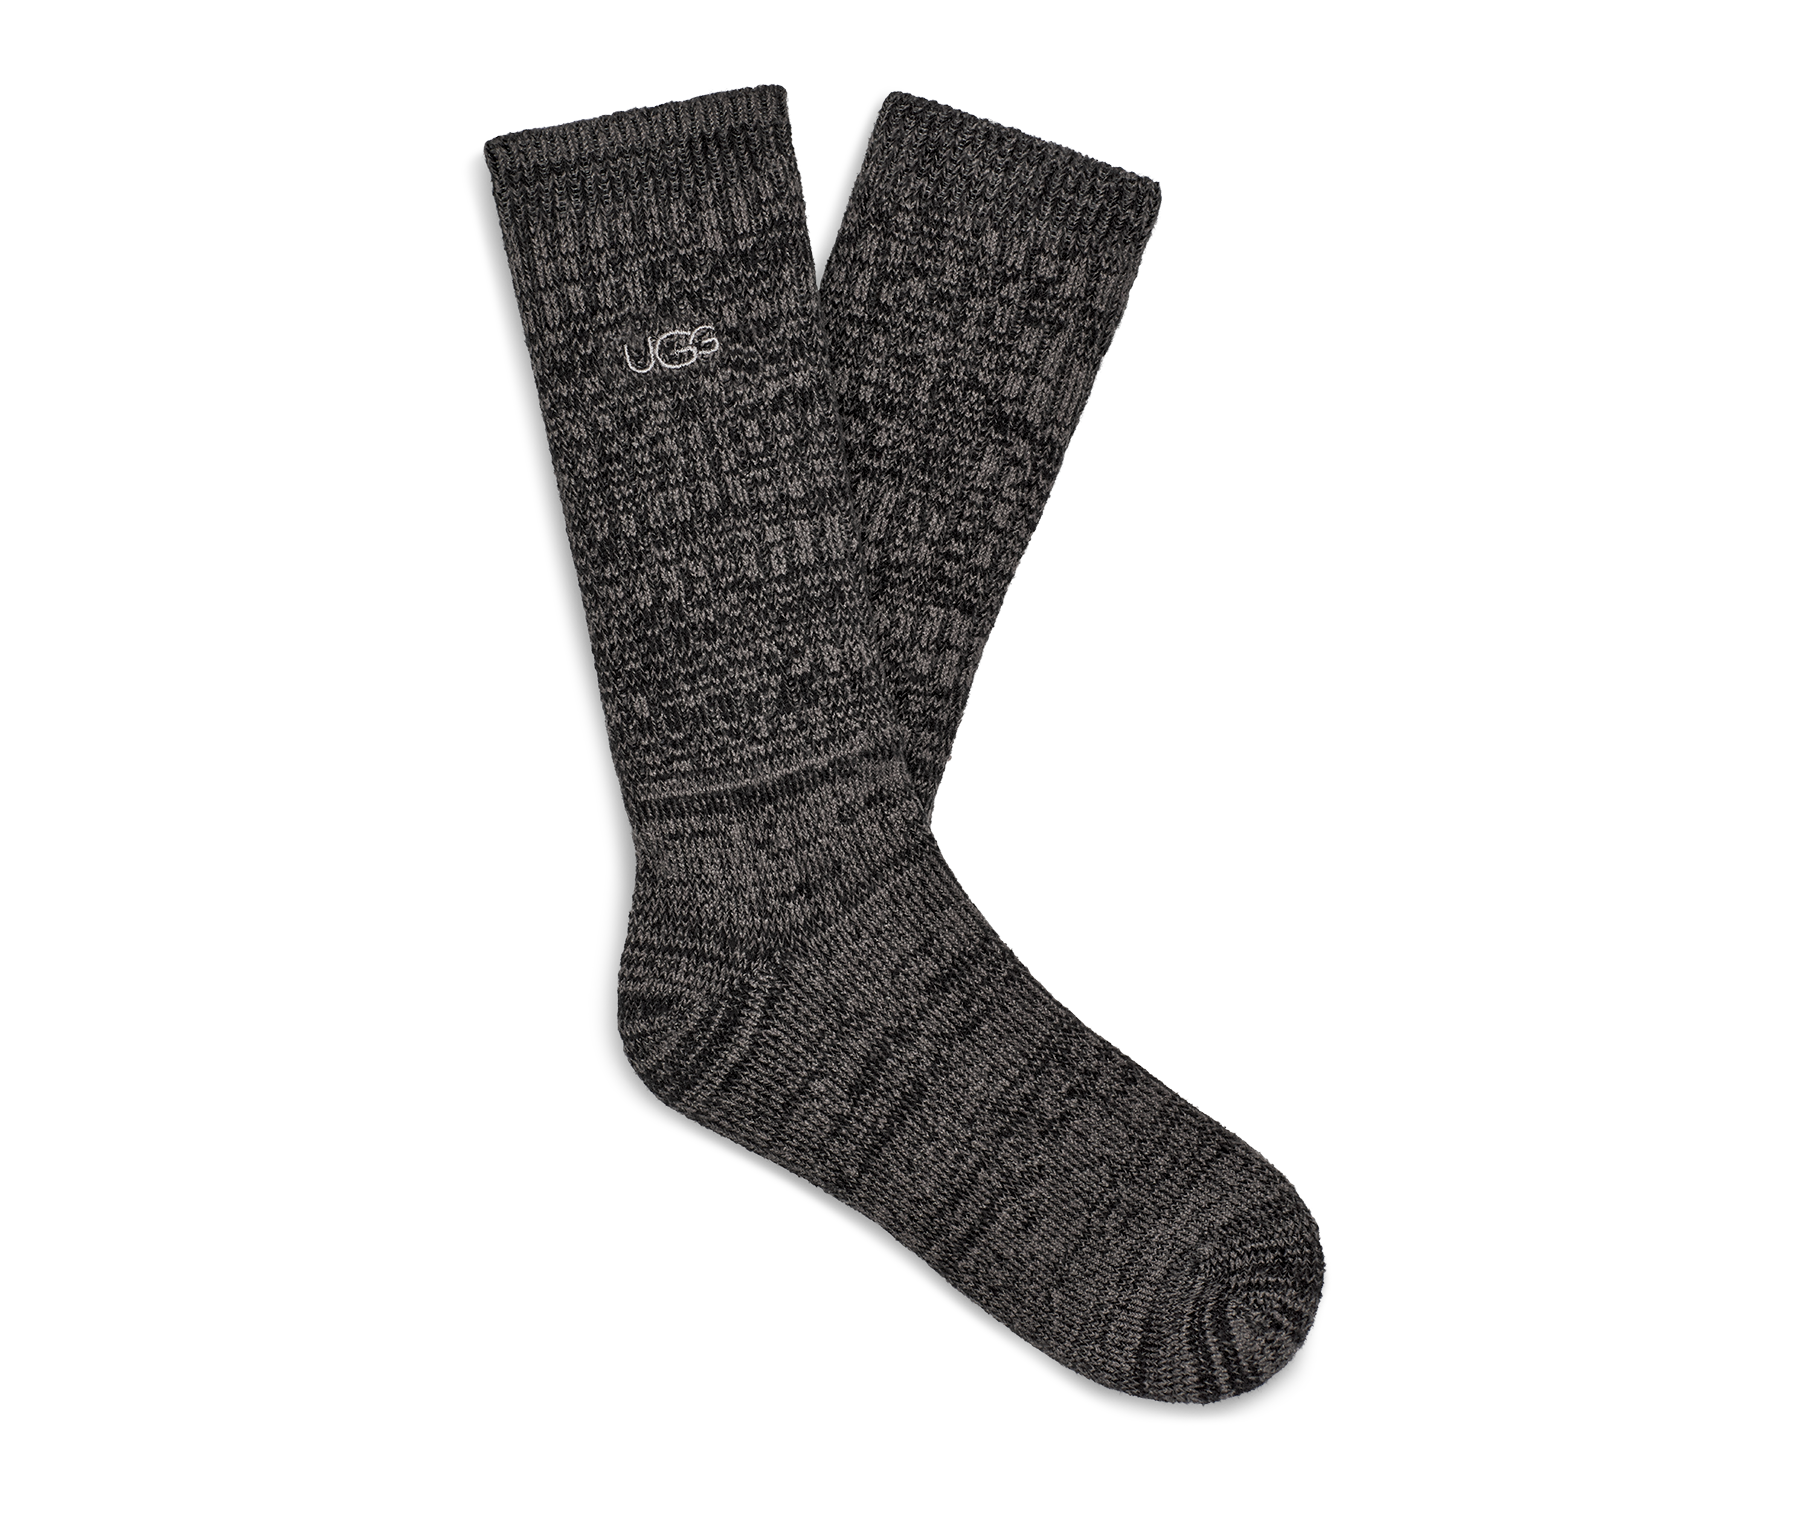 UGG Men's Trey Rib Knit Slouchy Crew Polyester Socks in Black Made from a soft rib knit, this cozy crew sock is designed for a slouchier fit, offering premium relaxation that's perfect around the house. 99% Polyester/1% Elastane. UGG Men's Trey Rib Knit Slouchy Crew Polyester Socks in Black